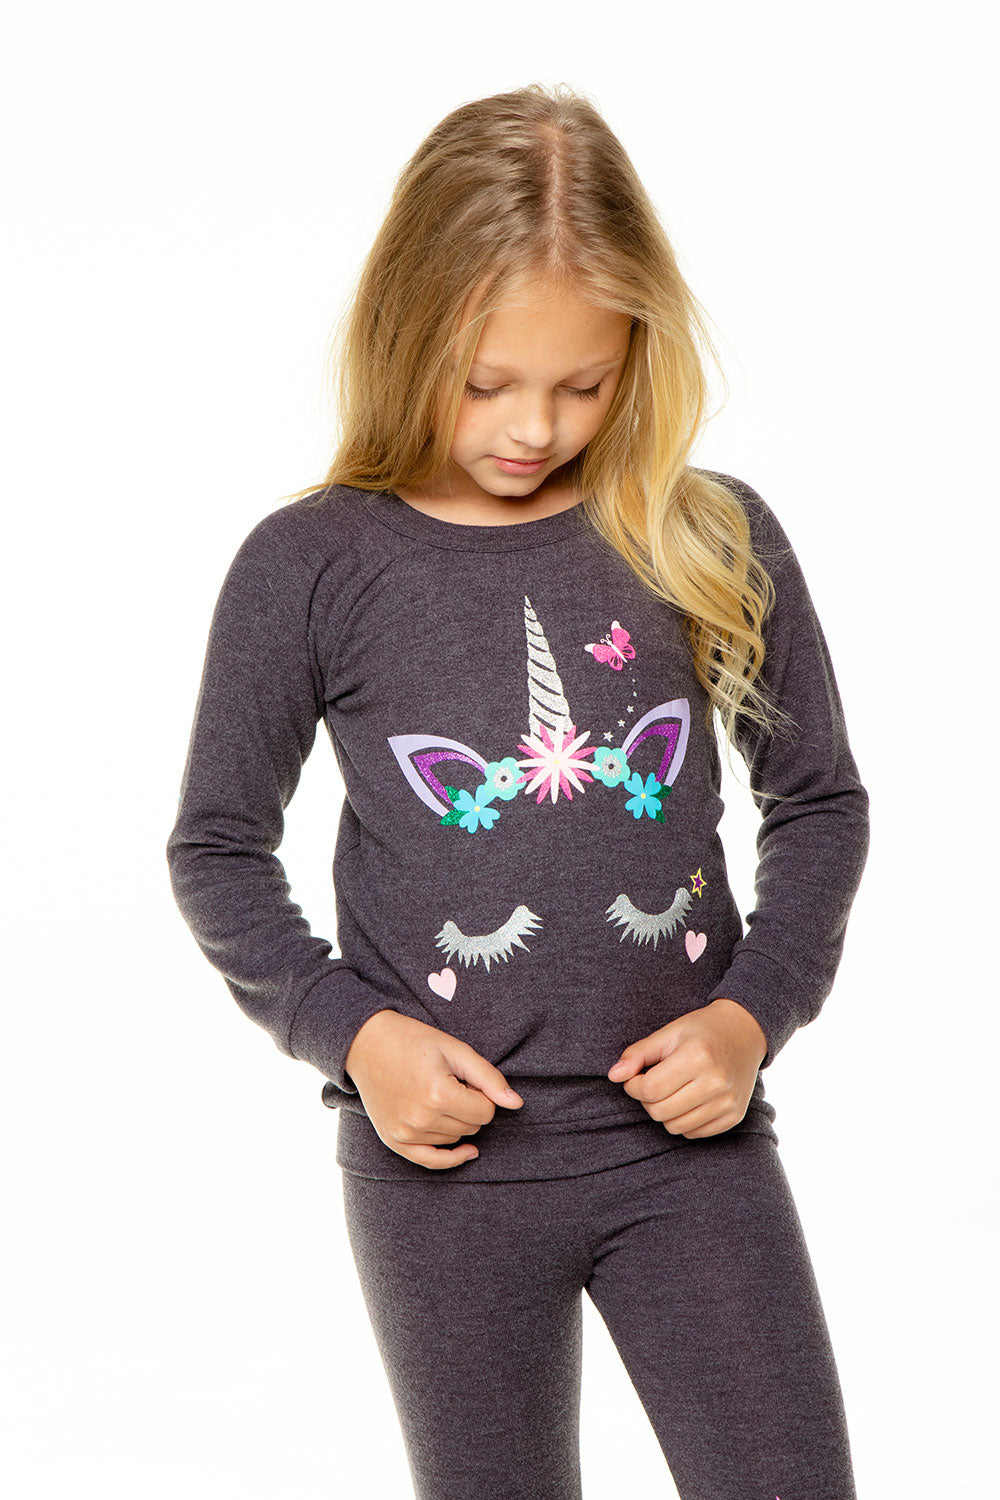 Disco Unicorn GIRLS chaserbrand4.myshopify.com